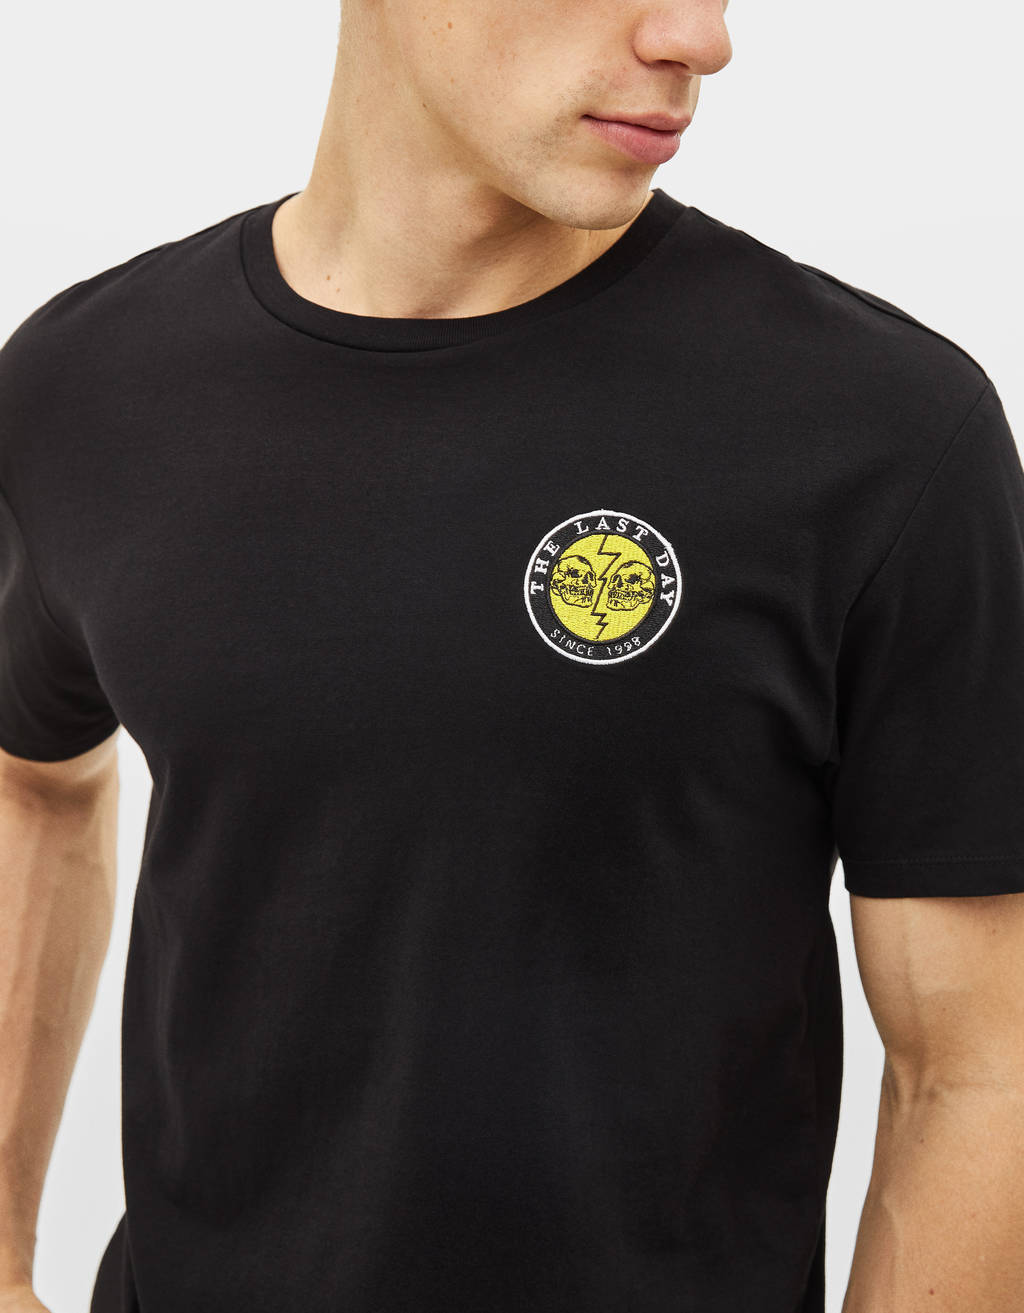 Camiseta con logo bordado